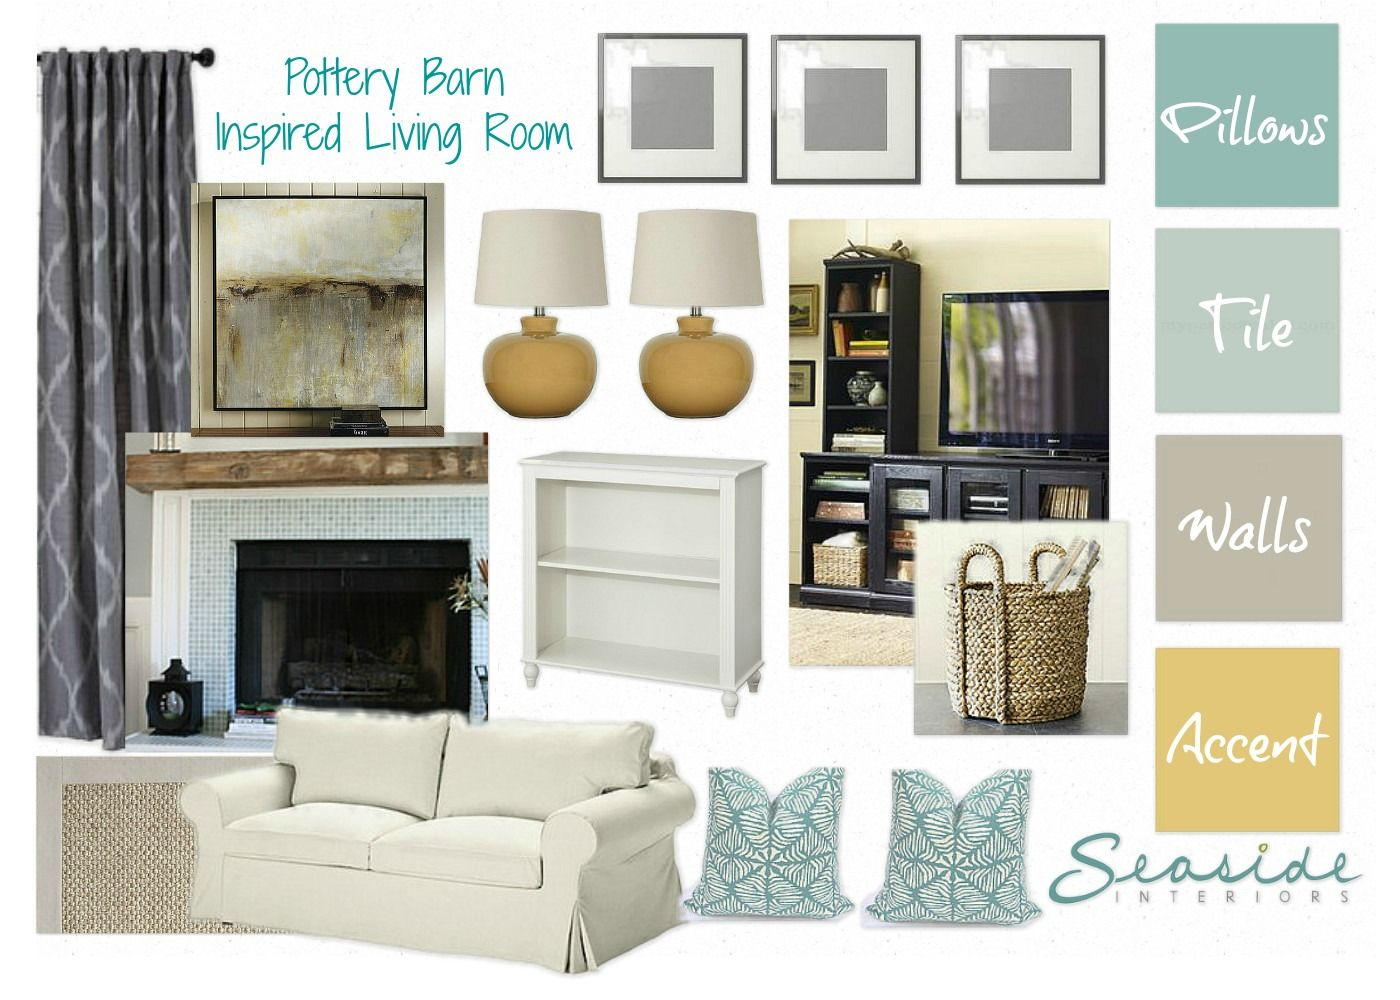 Seaside Interiors: One of several pottery barn inspired designs ...